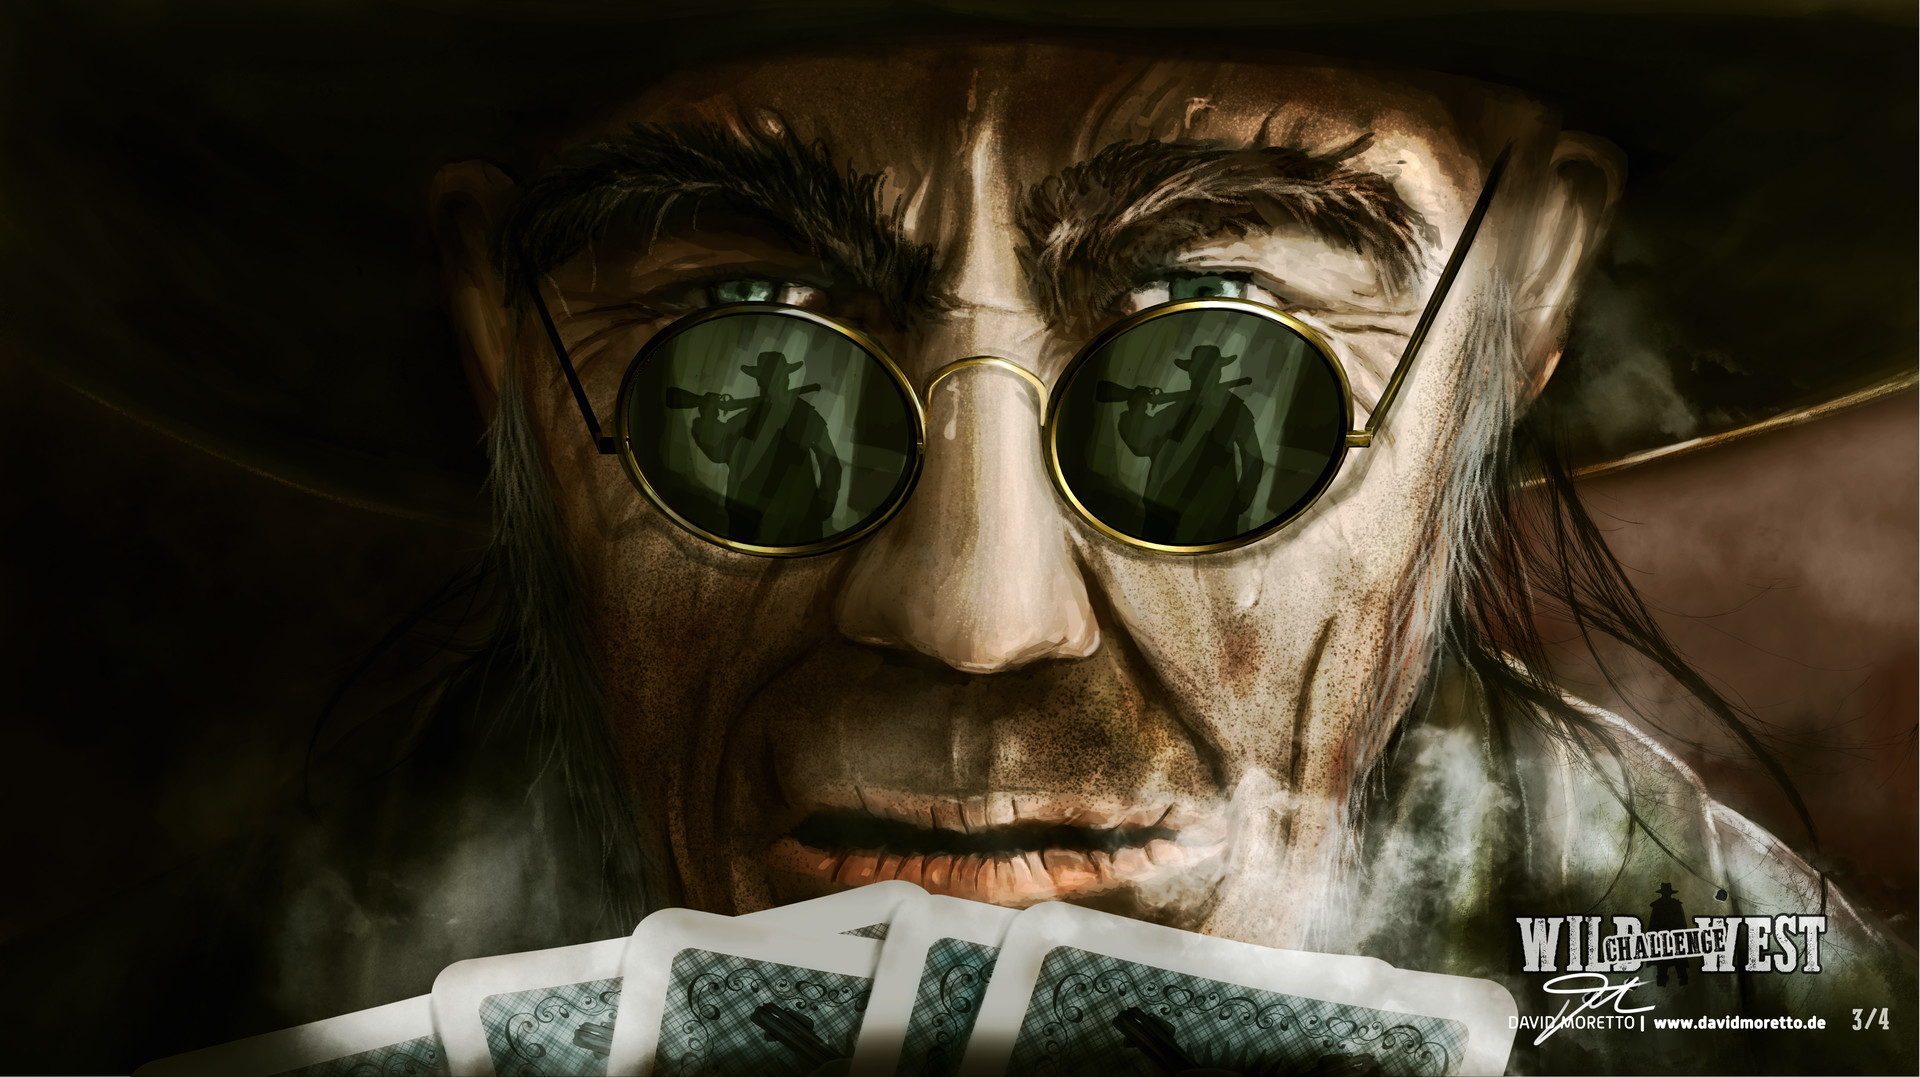 Wild West Keyframe Illustration THE LATE REVENGE! #3 / 4 